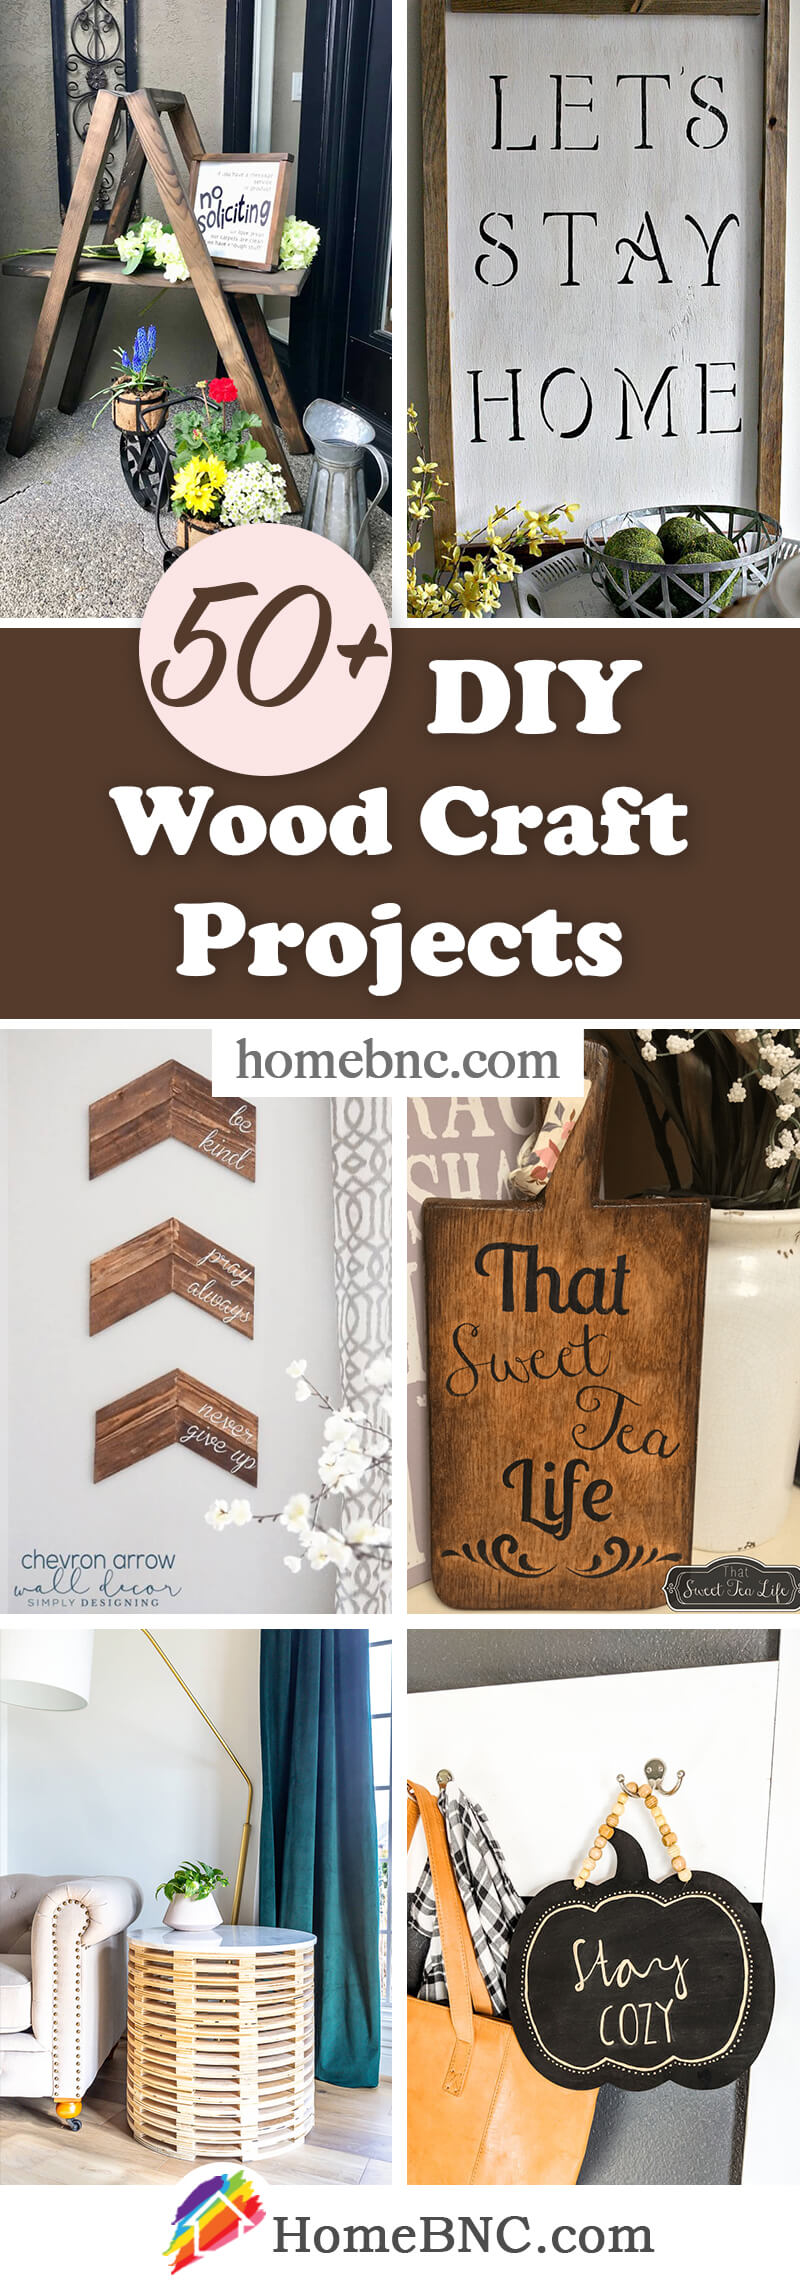 DIY Wood Craft Projects